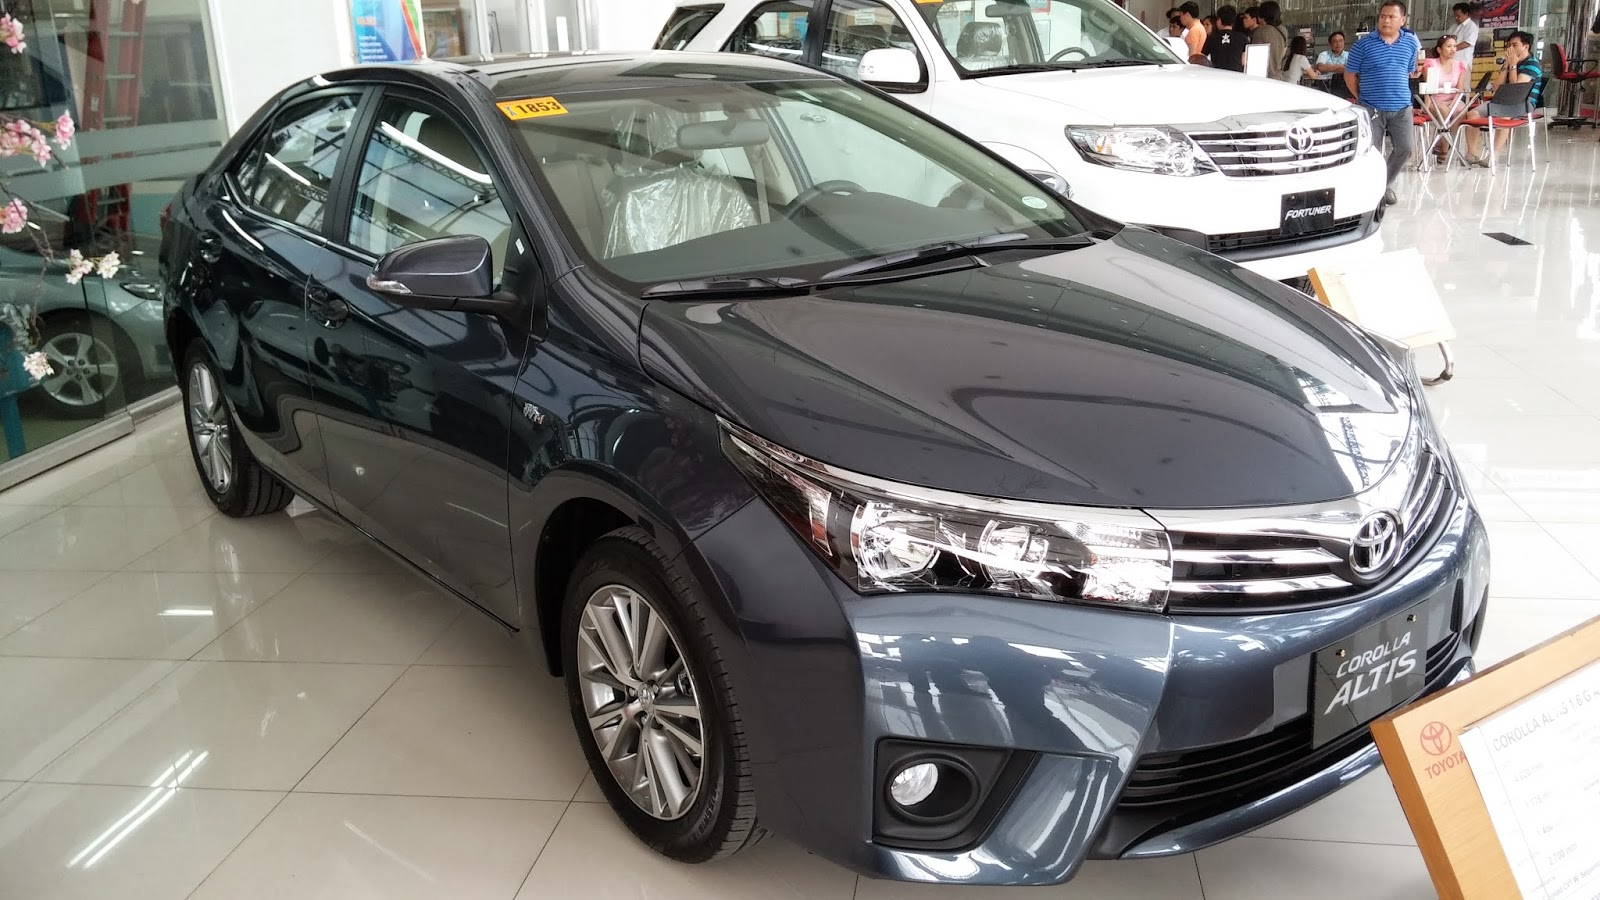 brand new toyota altis price yaris ts trd all corolla 2014 lakbay atbp